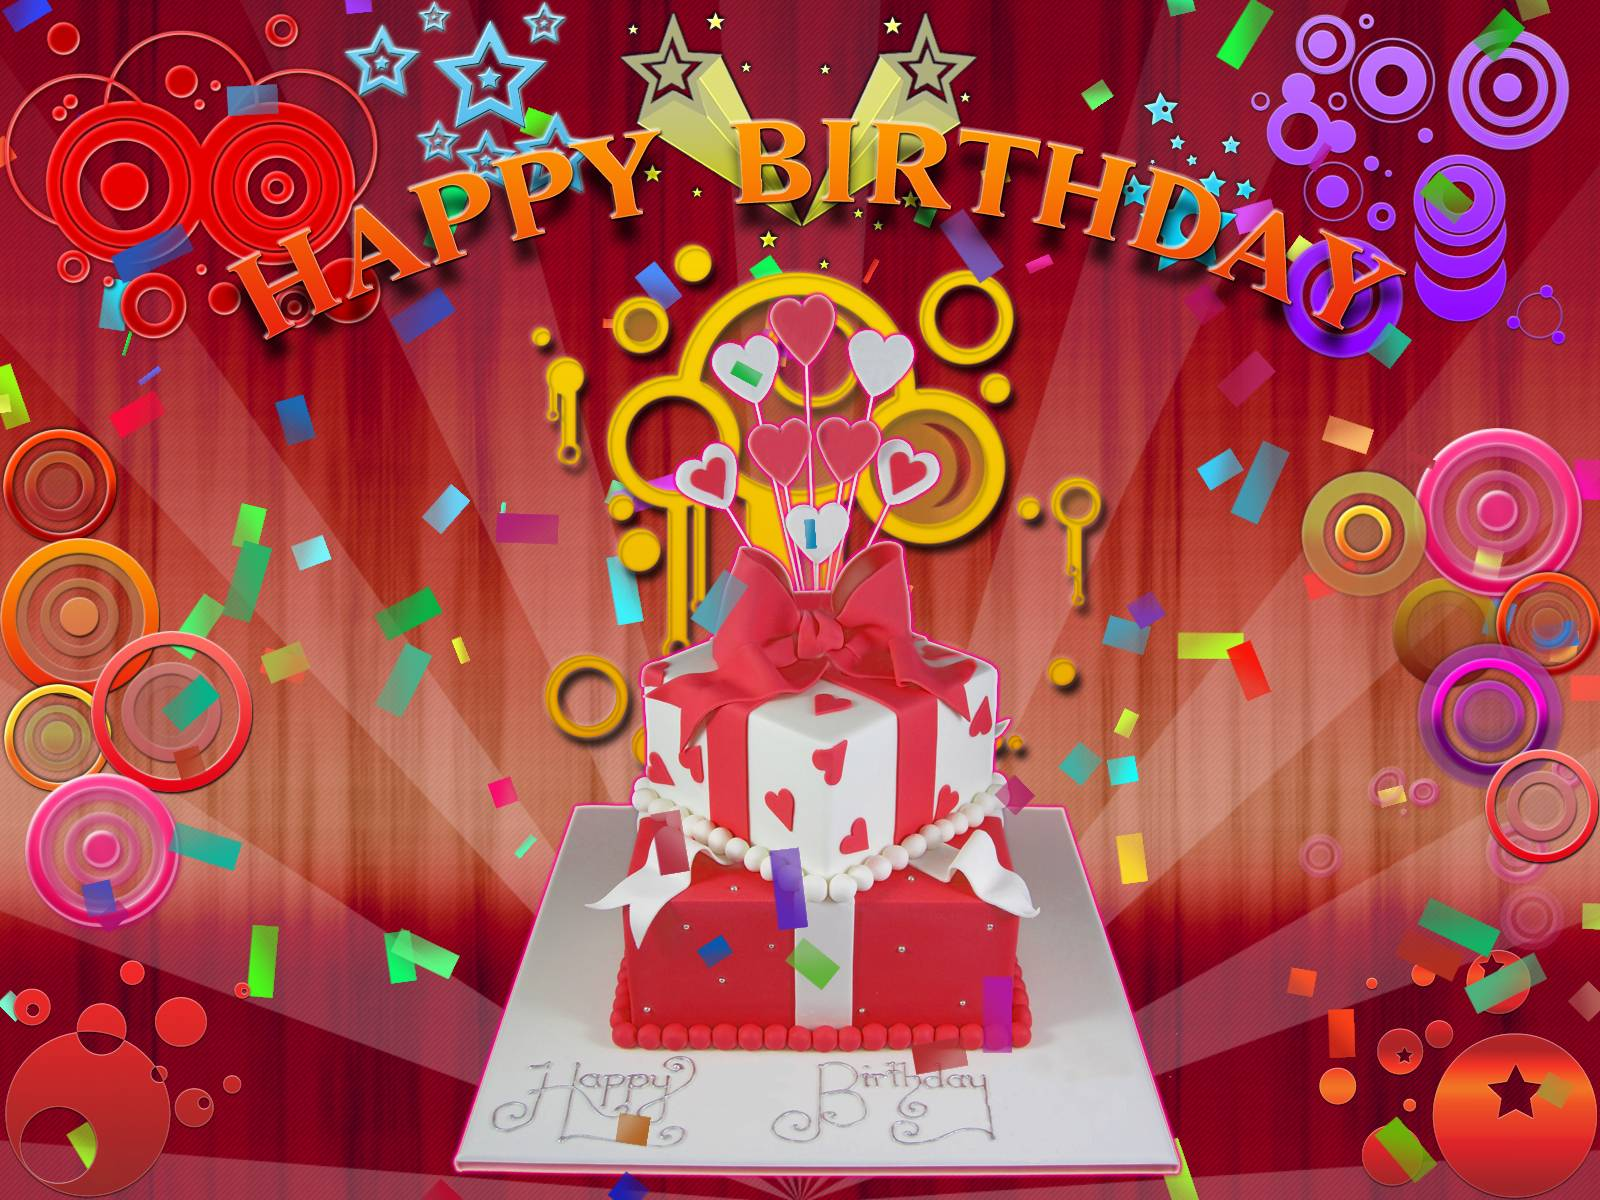 happy birthday special wallpaper ; Free-download-Red-Happy-Birthday-Images-1